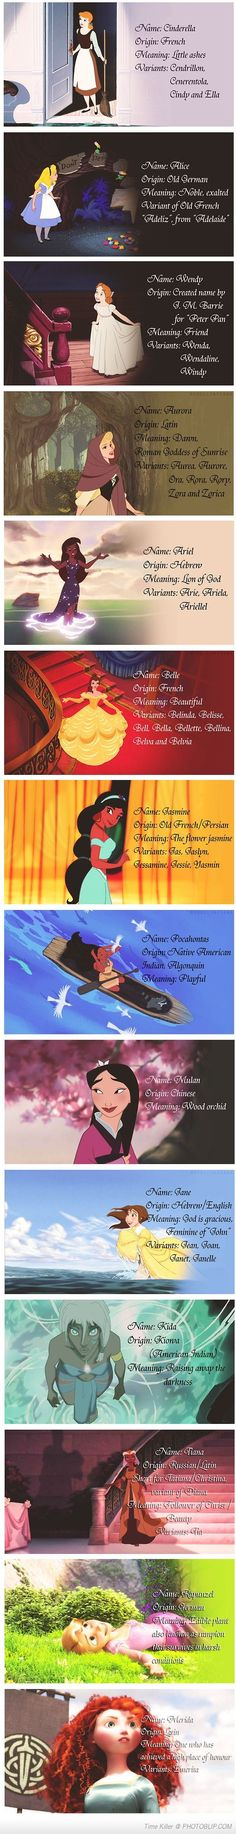 The Meanings Behind The Names Of The Disney Ladies. I like that this is in chronological order.